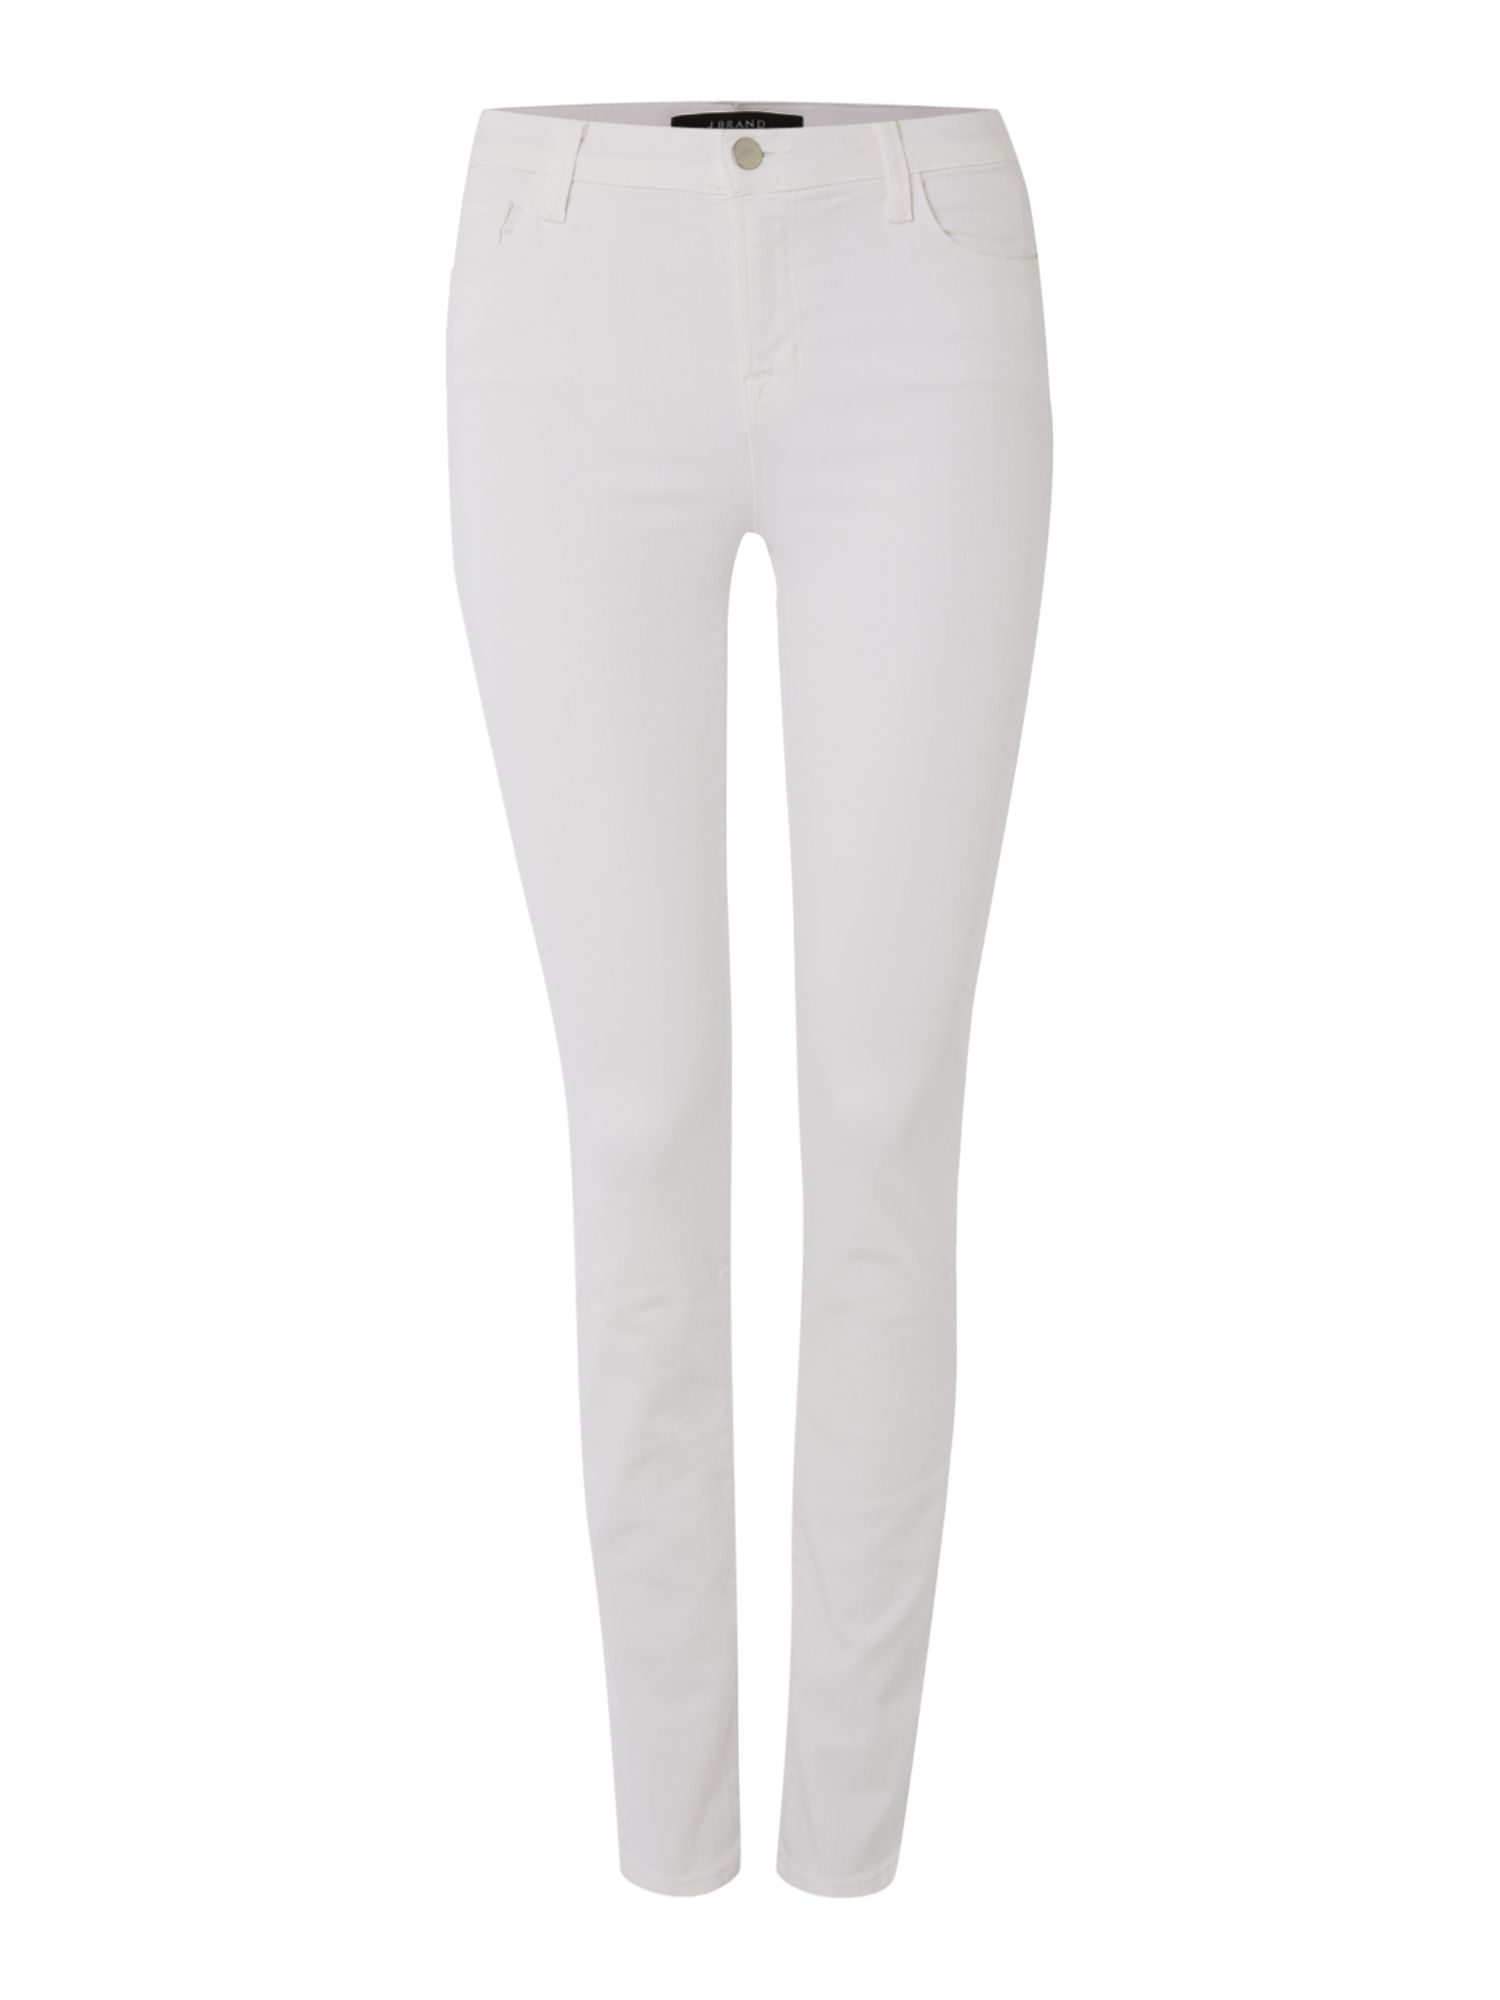 811 Mid Rise Skinny Jeans In Blanc, White